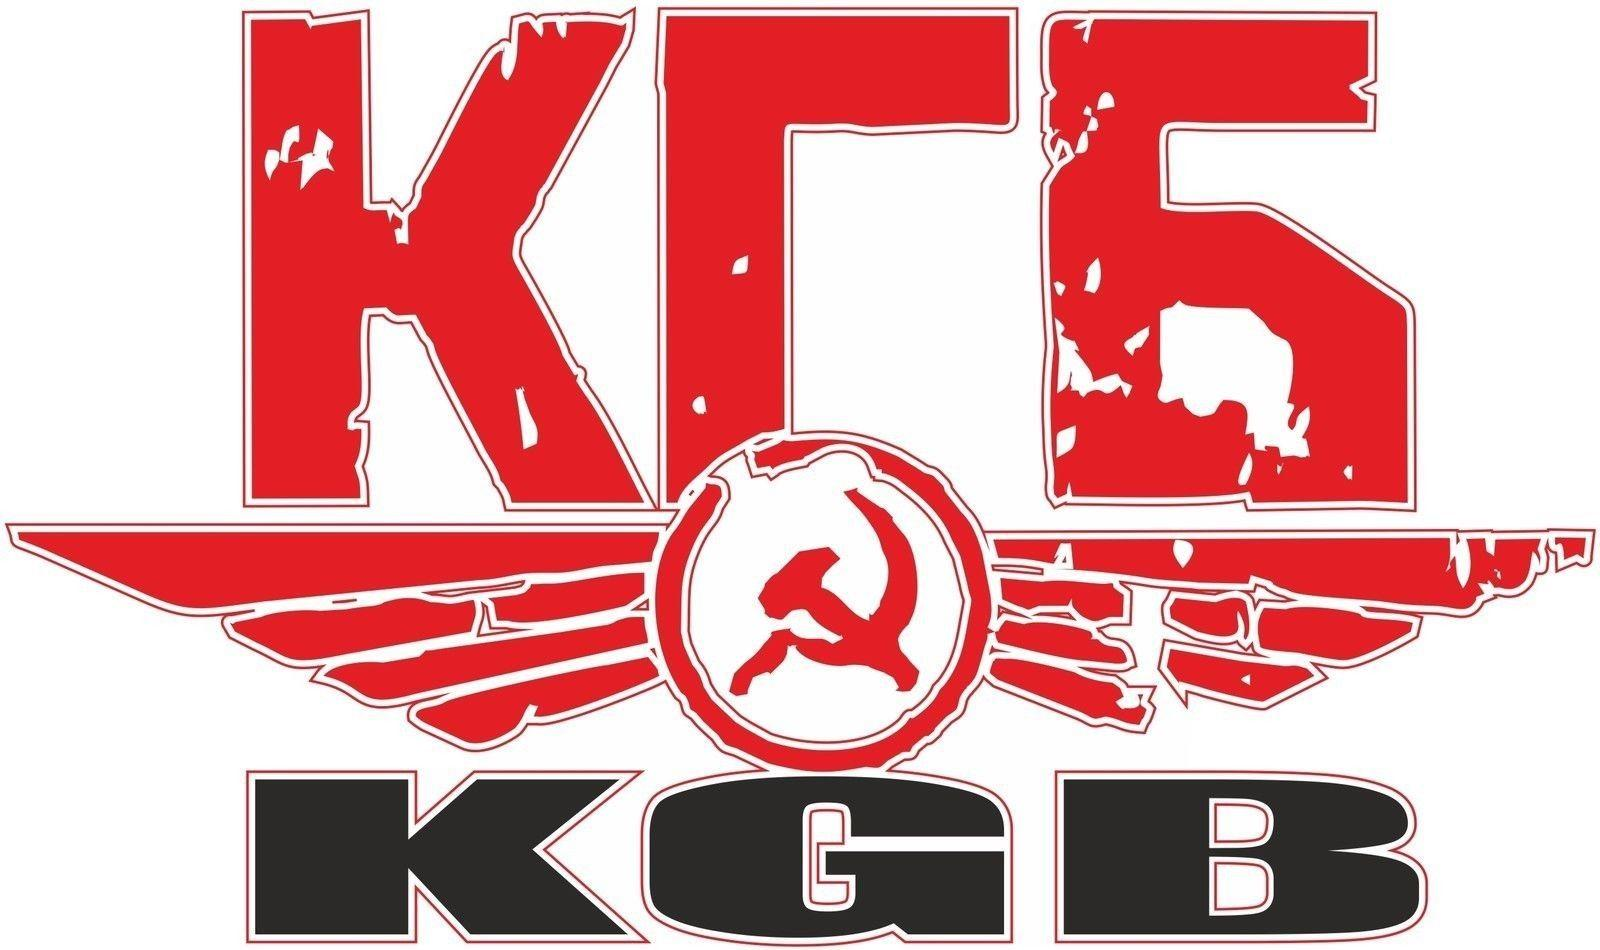 KGB CCCP TOPS T SHIRTS T-SHIRTS USSR Russia Russian HAMMER SICKLE РУССКИЙ Россия Cool Casual